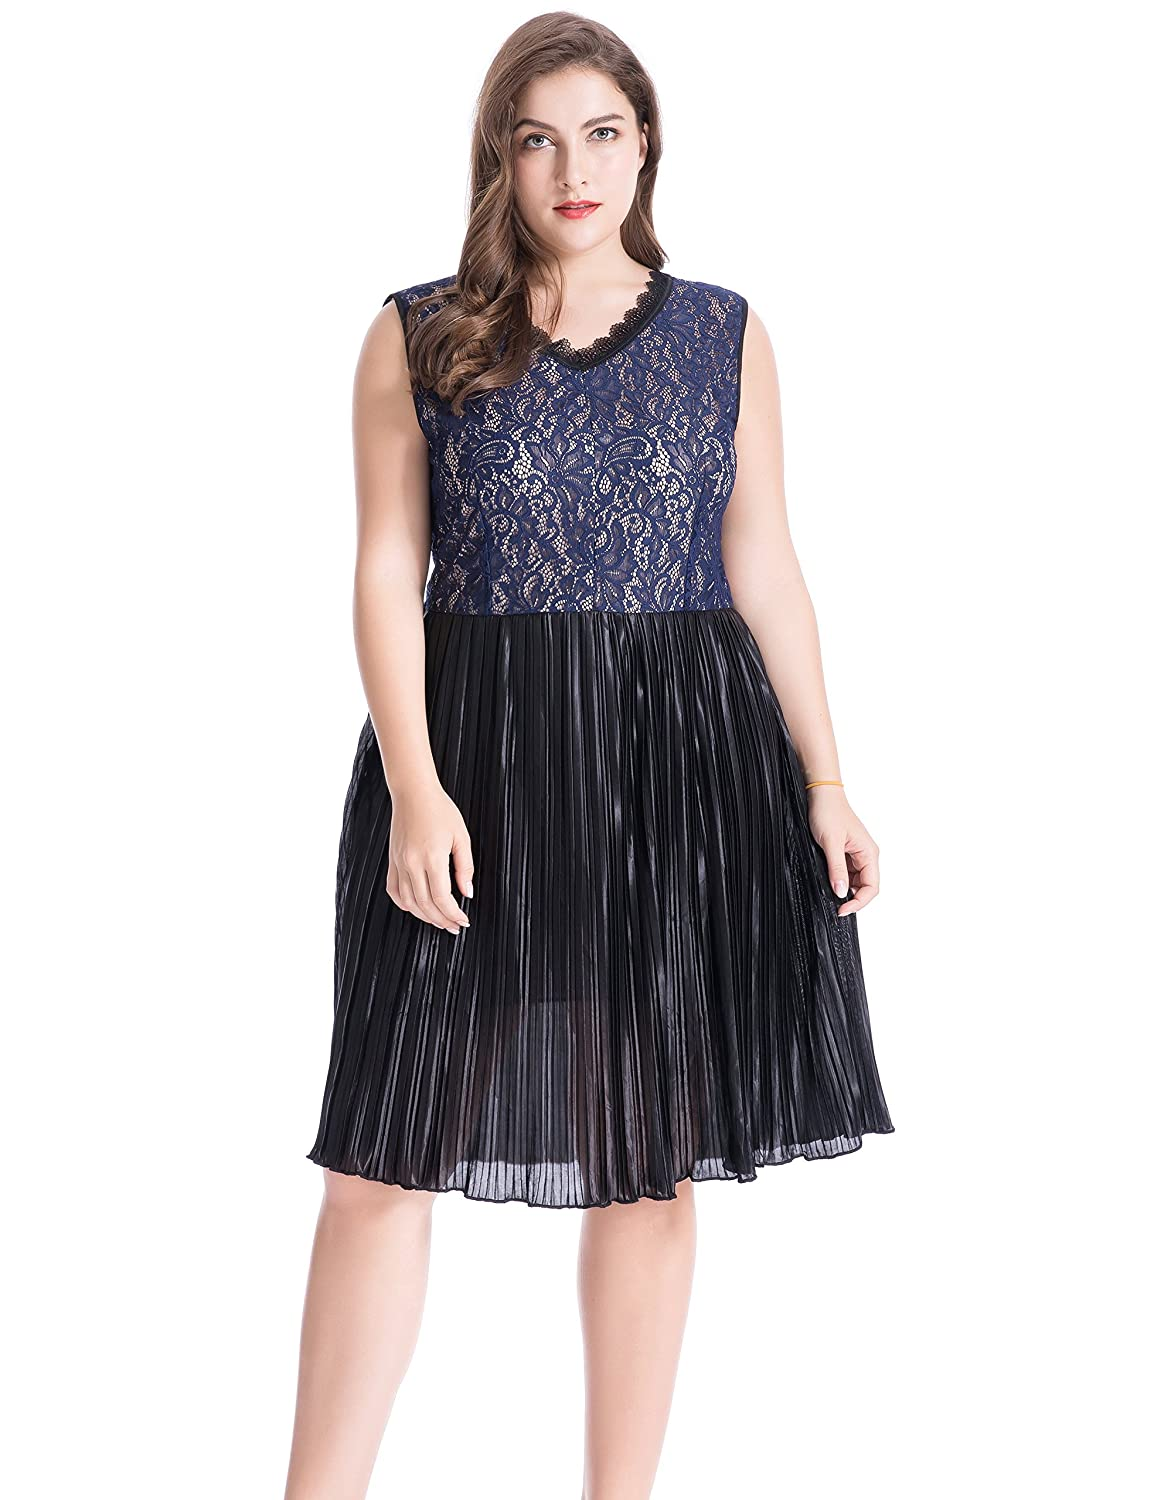 da28592461304 Chicwe Women s Plus Size Lined Floral Scalloped Lace Dress with Pleated  Skirt - Knee Length Casual Party Cocktail Dress at Amazon Women s Clothing  store